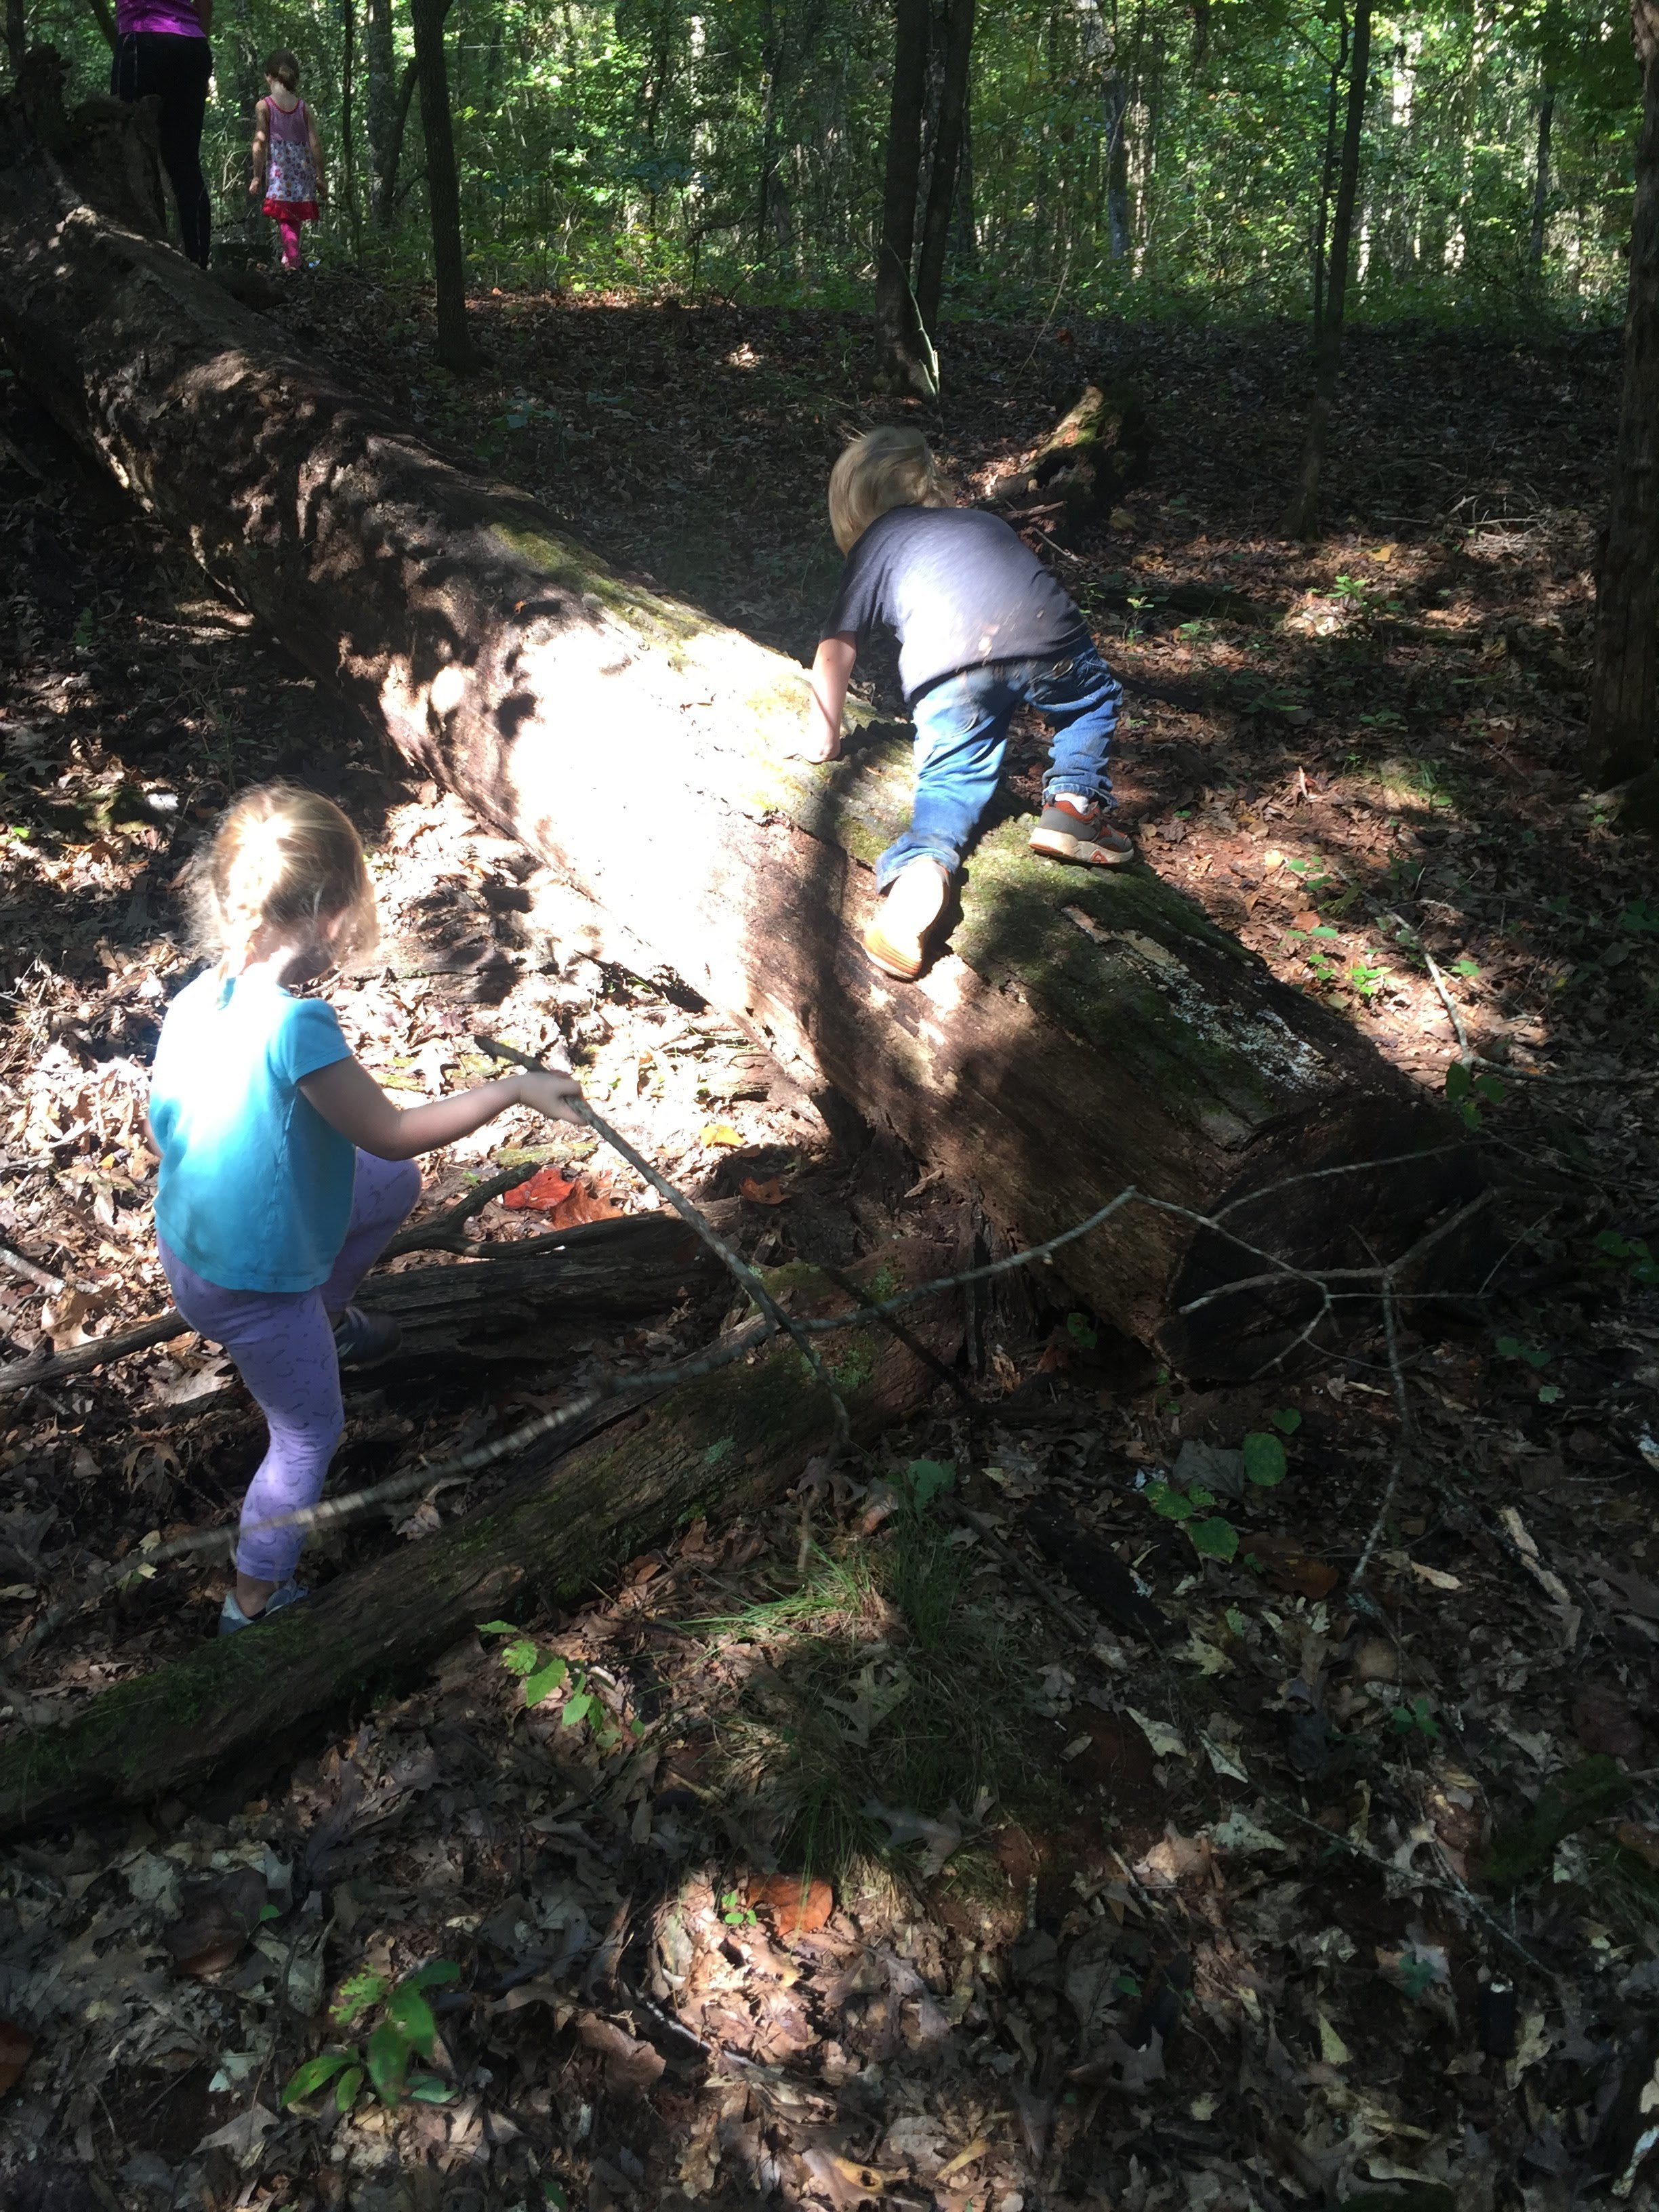 Mabry and Maddux lining up to walk up the wiggly tree, the children's own discovery.